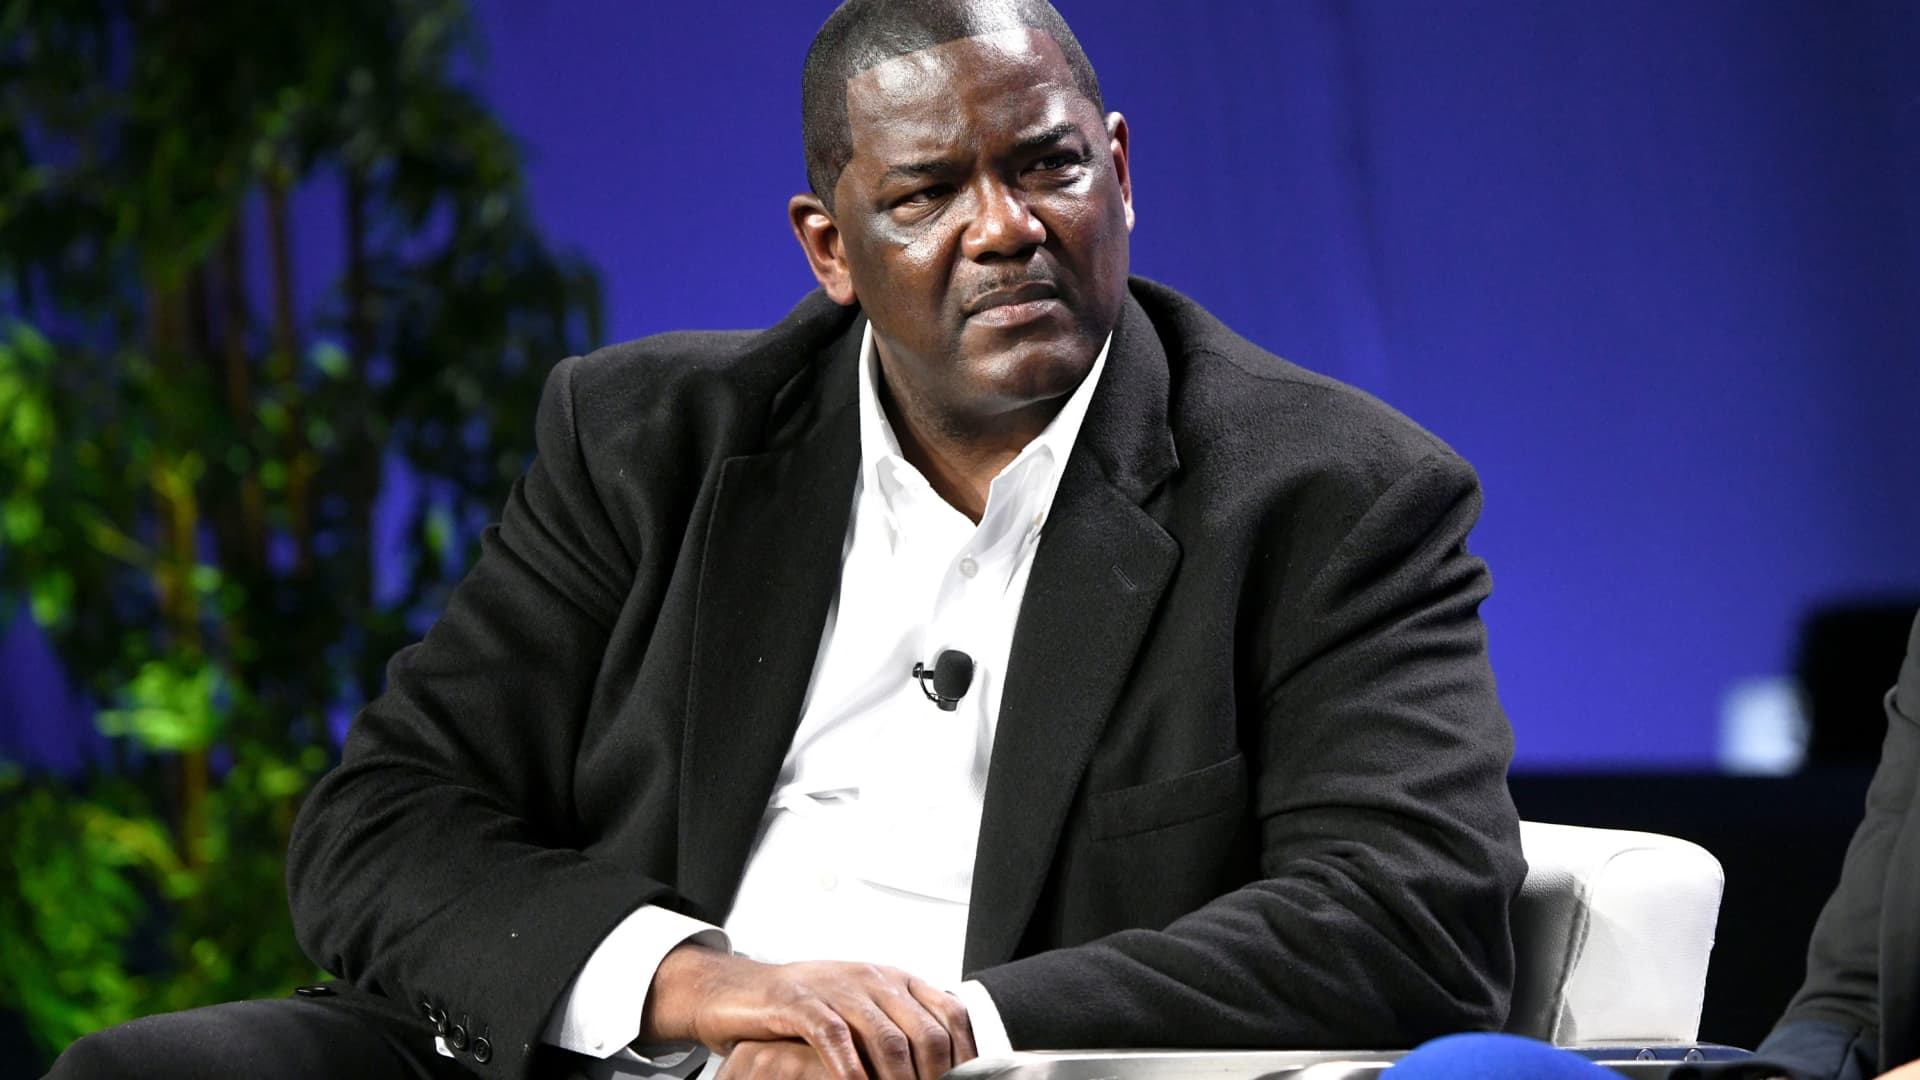 Joe Dumars participates in a panel discussion during the annual Milken Institute Global Conference at The Beverly Hilton Hotel on April 29, 2019 in Beverly Hills, California.